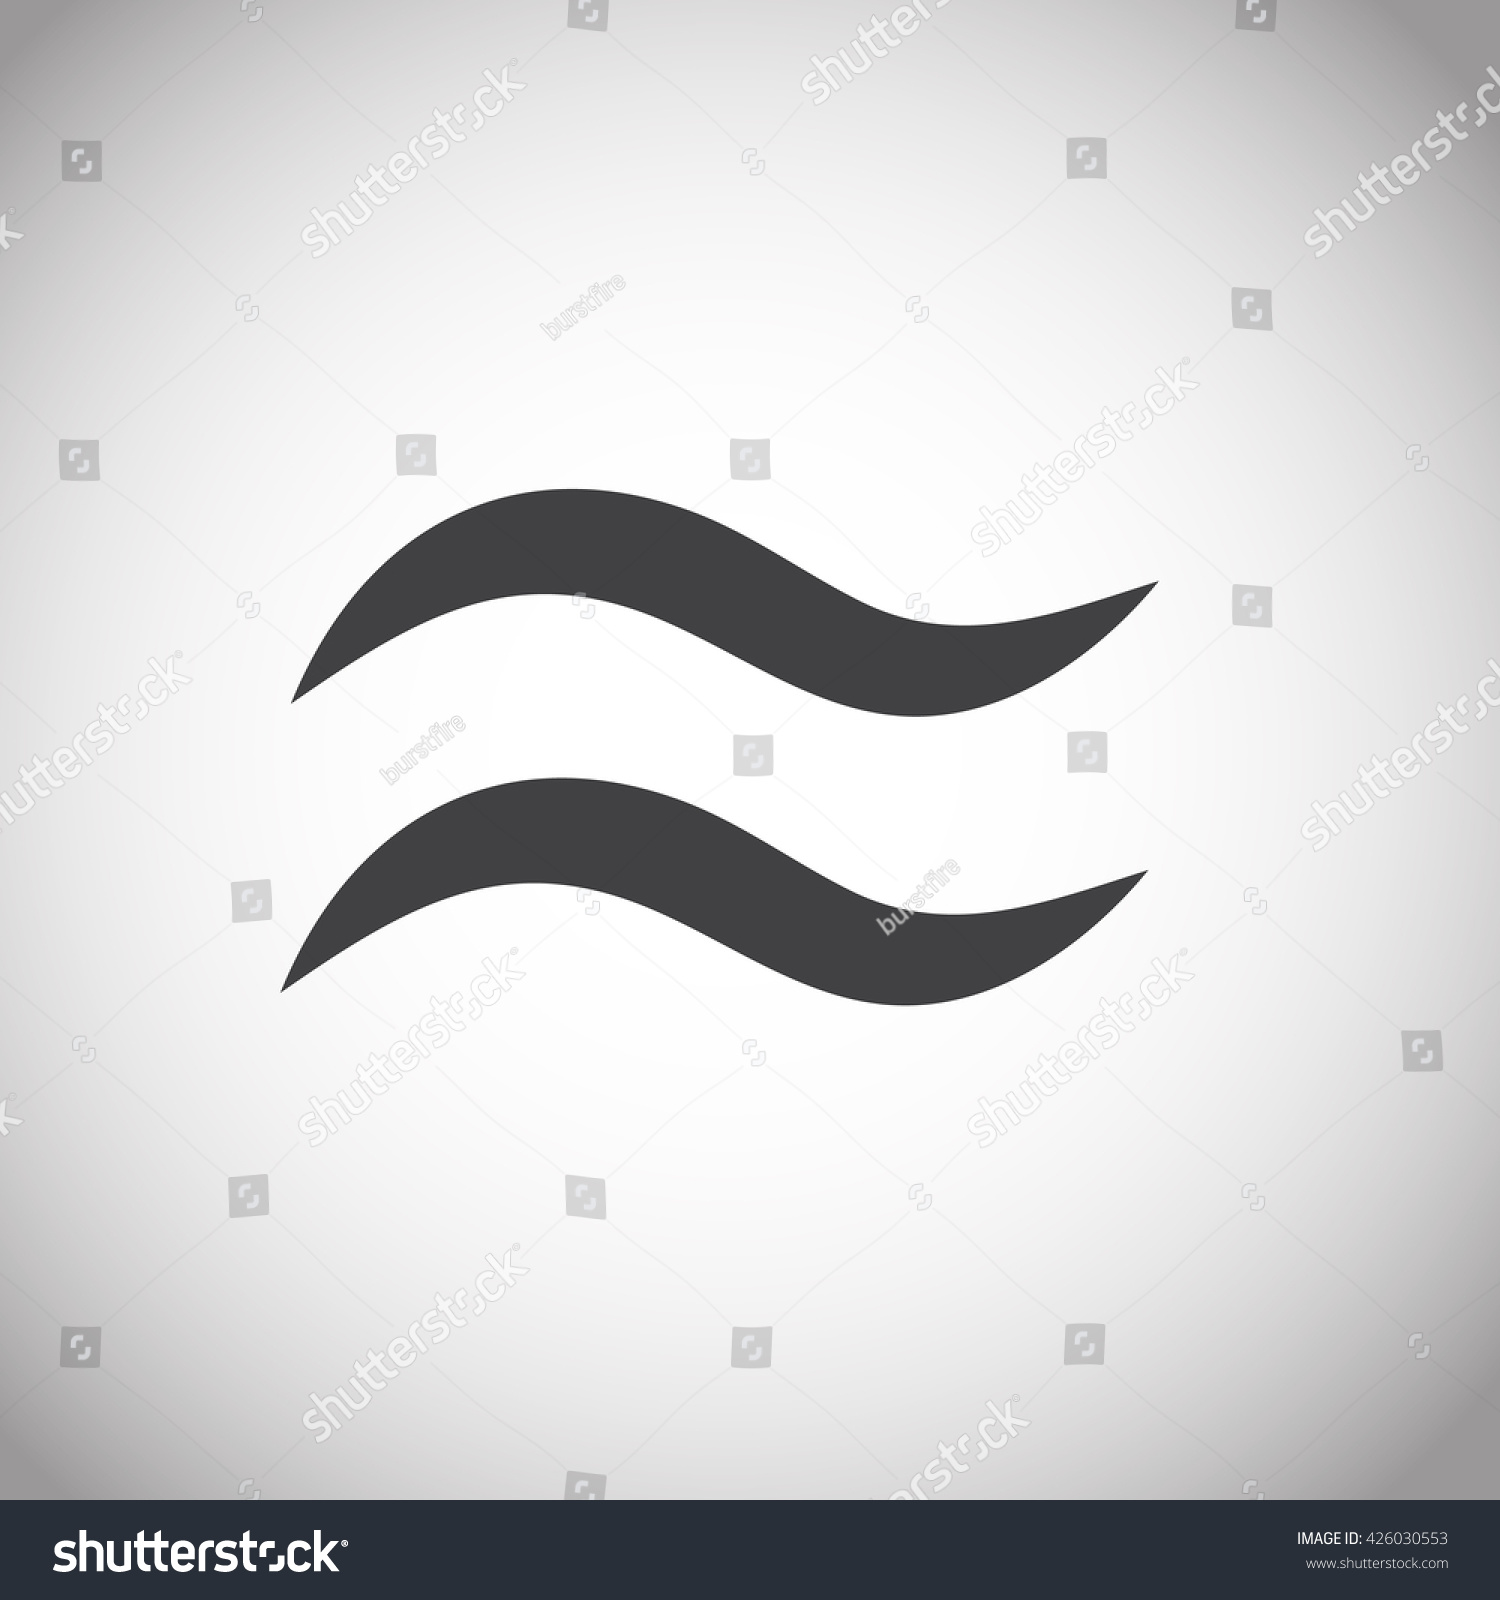 Approximately equal symbol sign icon gray stock illustration approximately equal symbol sign icon gray background biocorpaavc